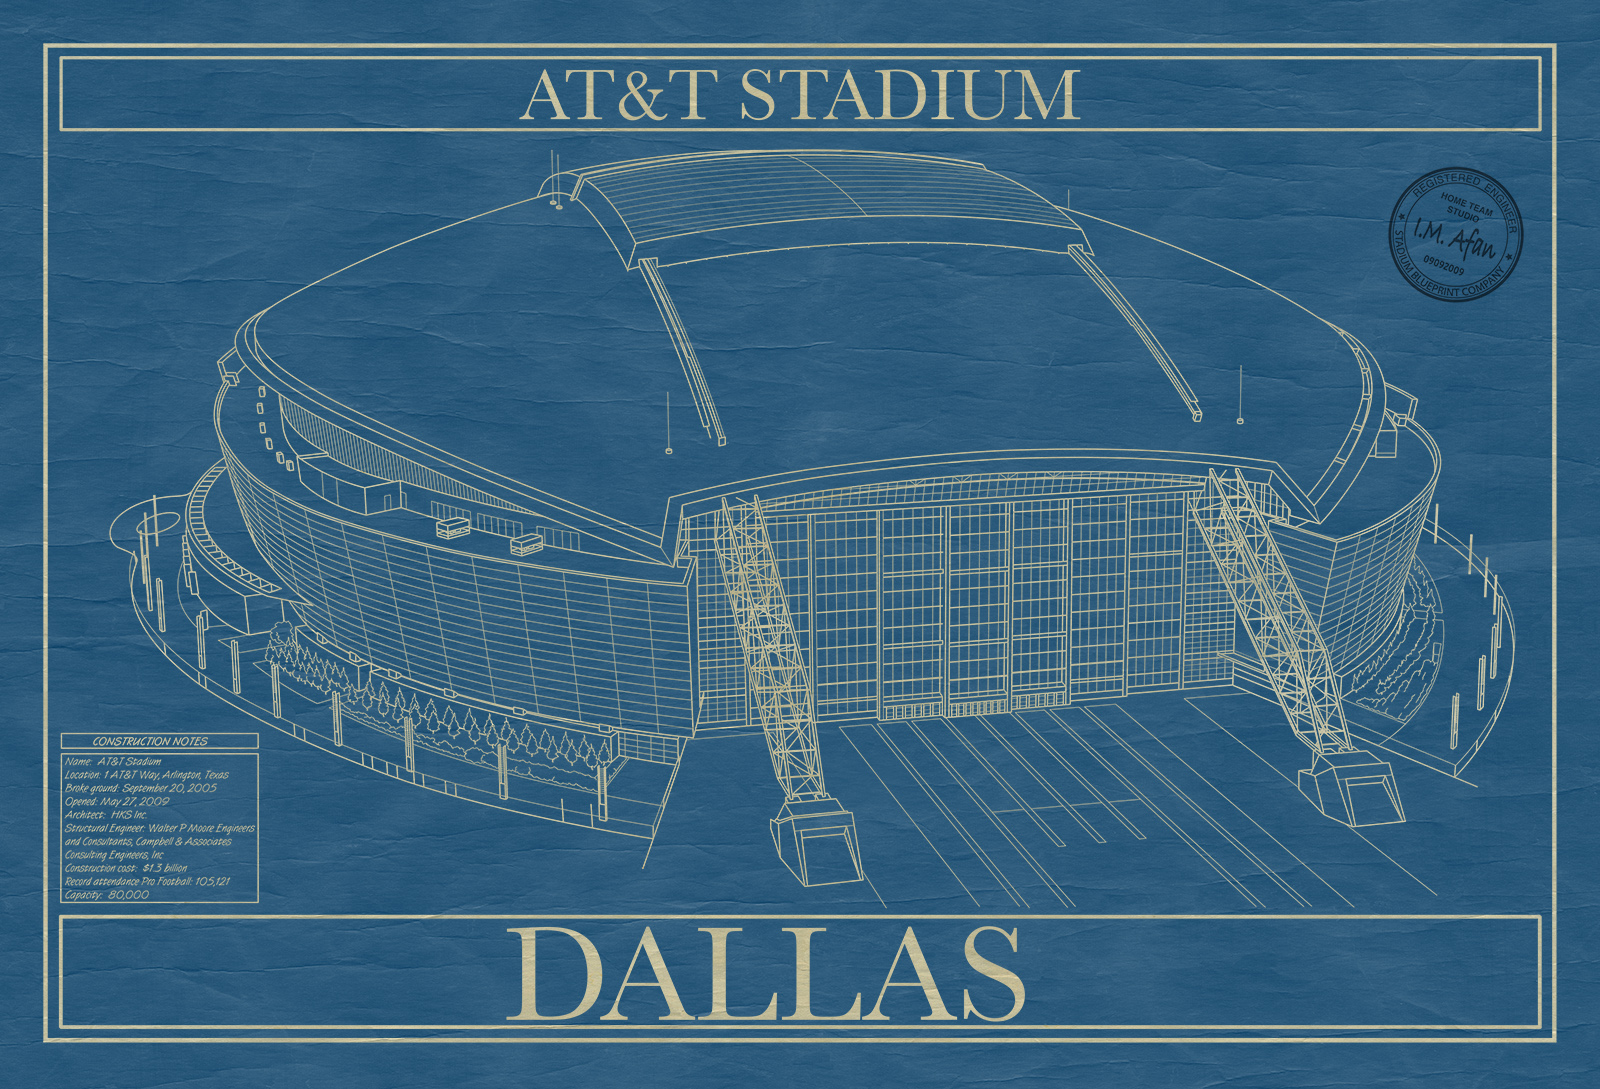 Dallas att stadium stadium blueprint company dallas att stadium malvernweather Image collections